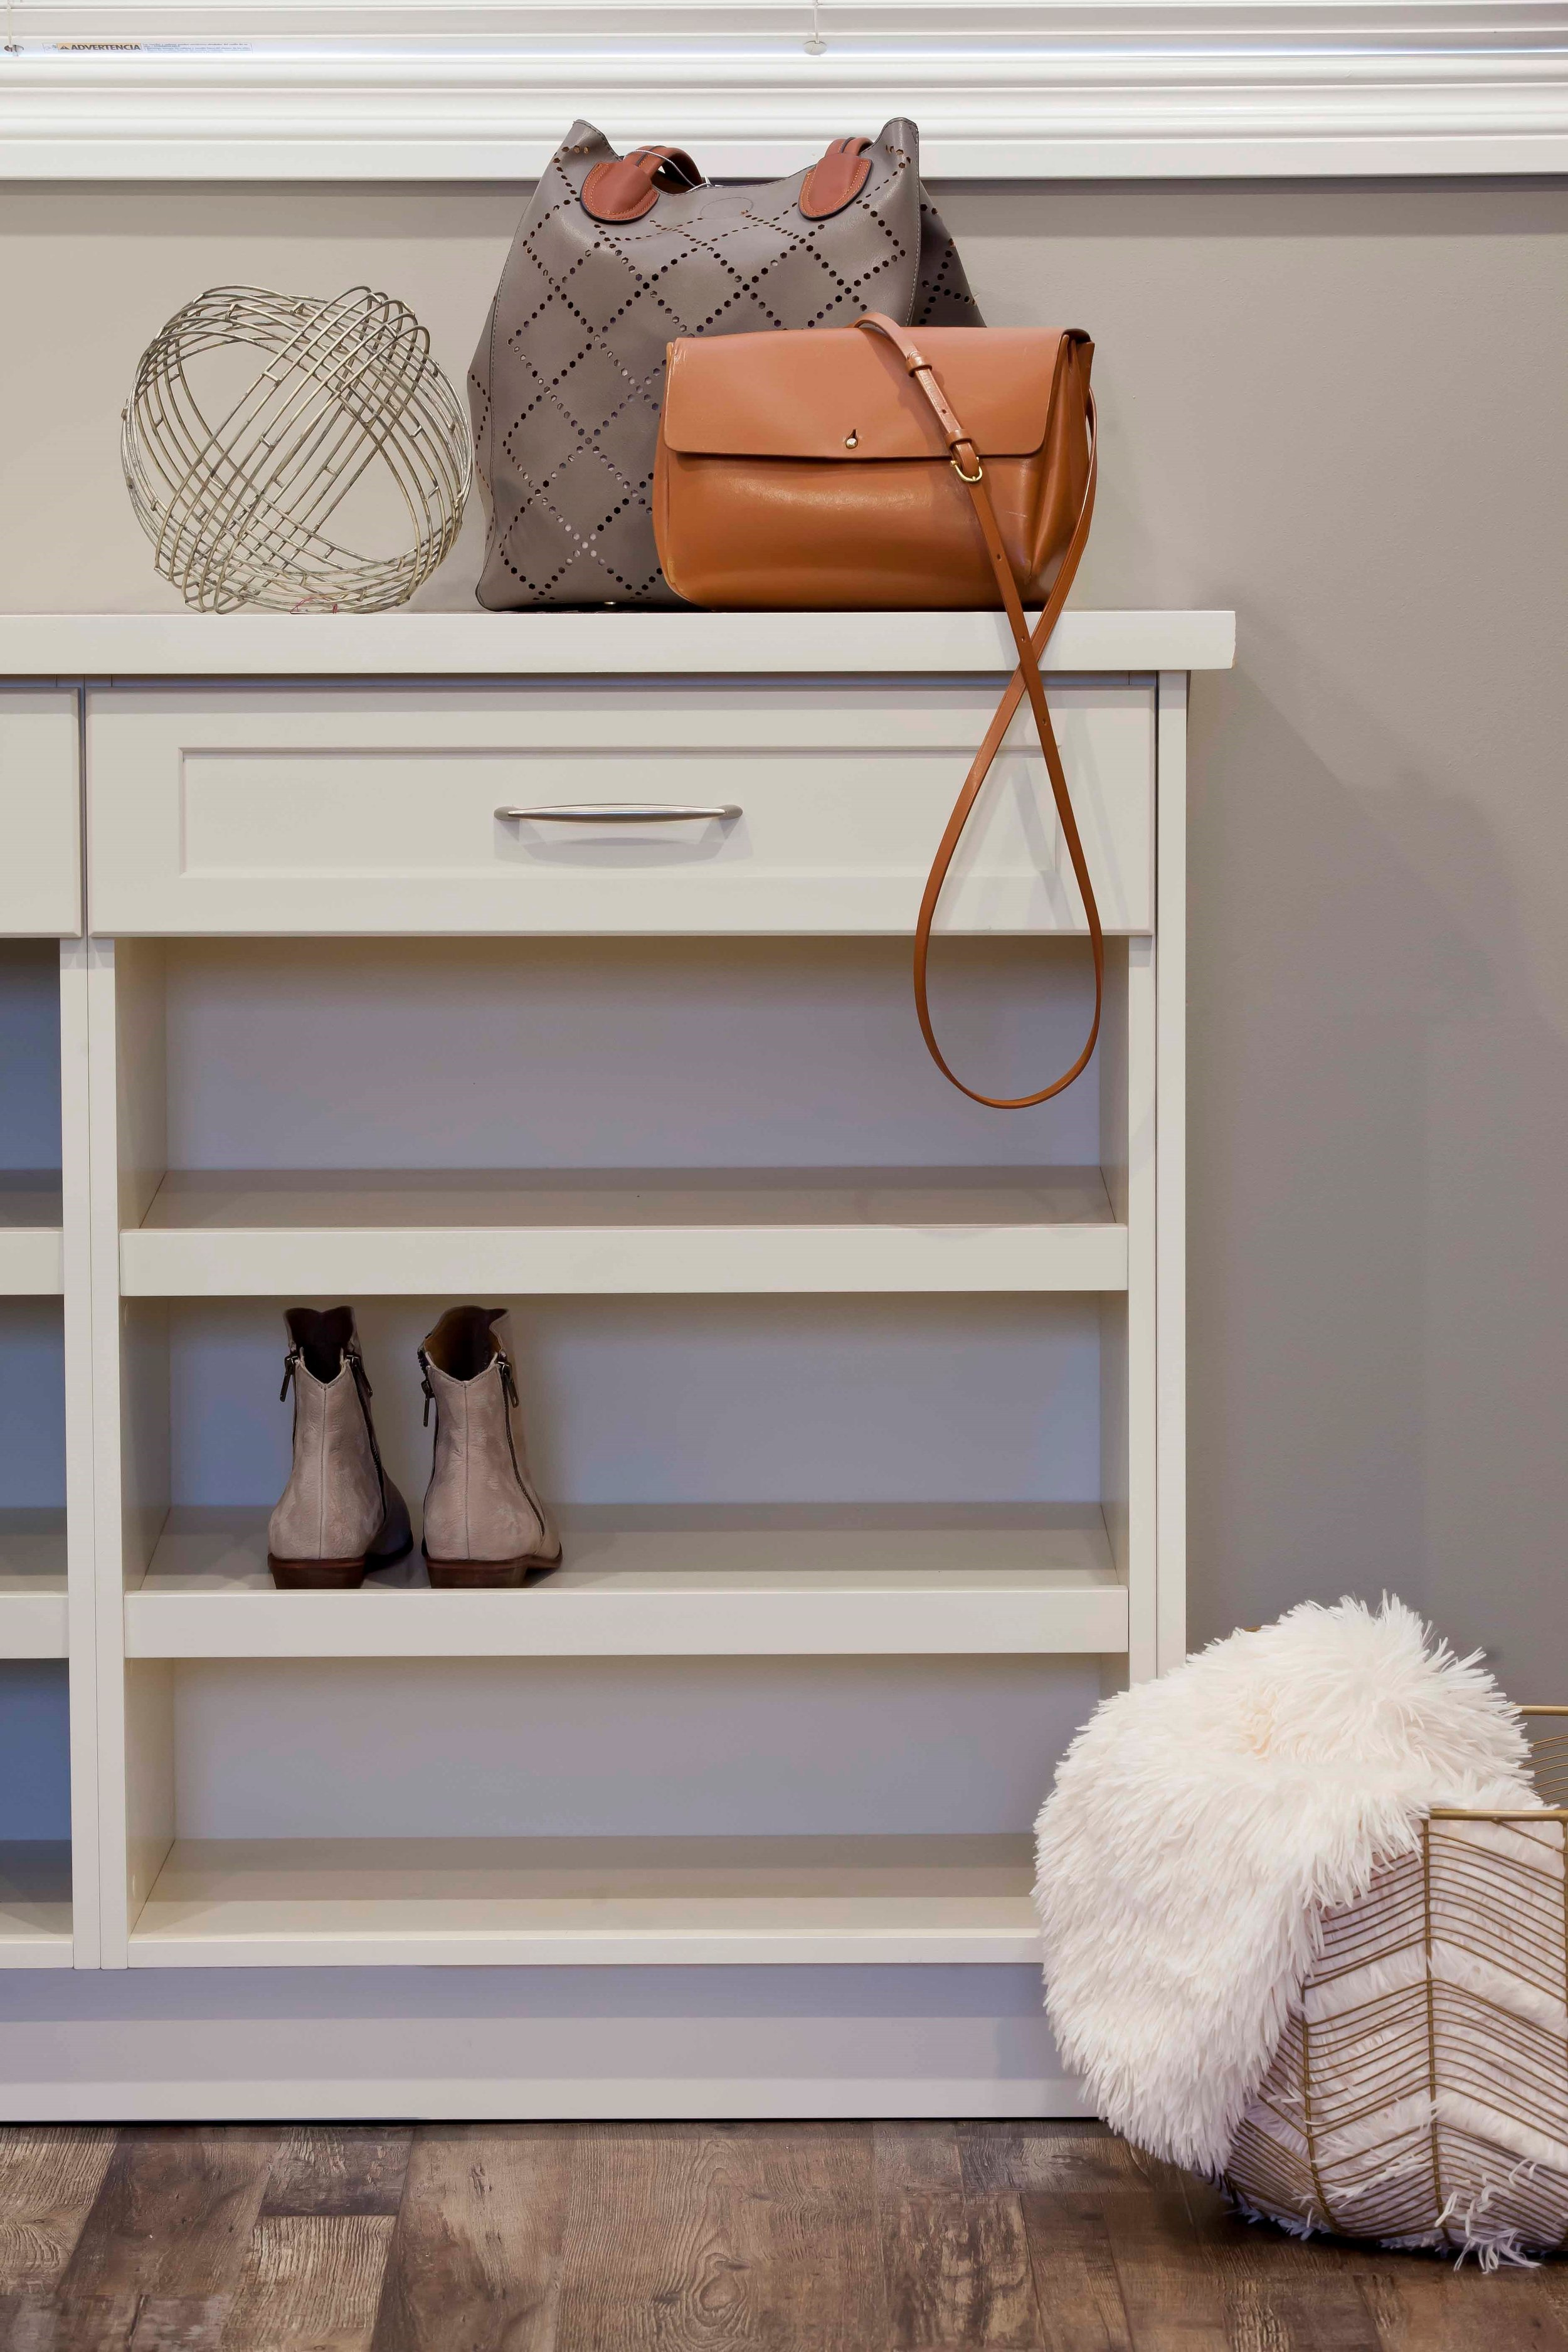 The shoe shelves were designed to make use of the space under the window.